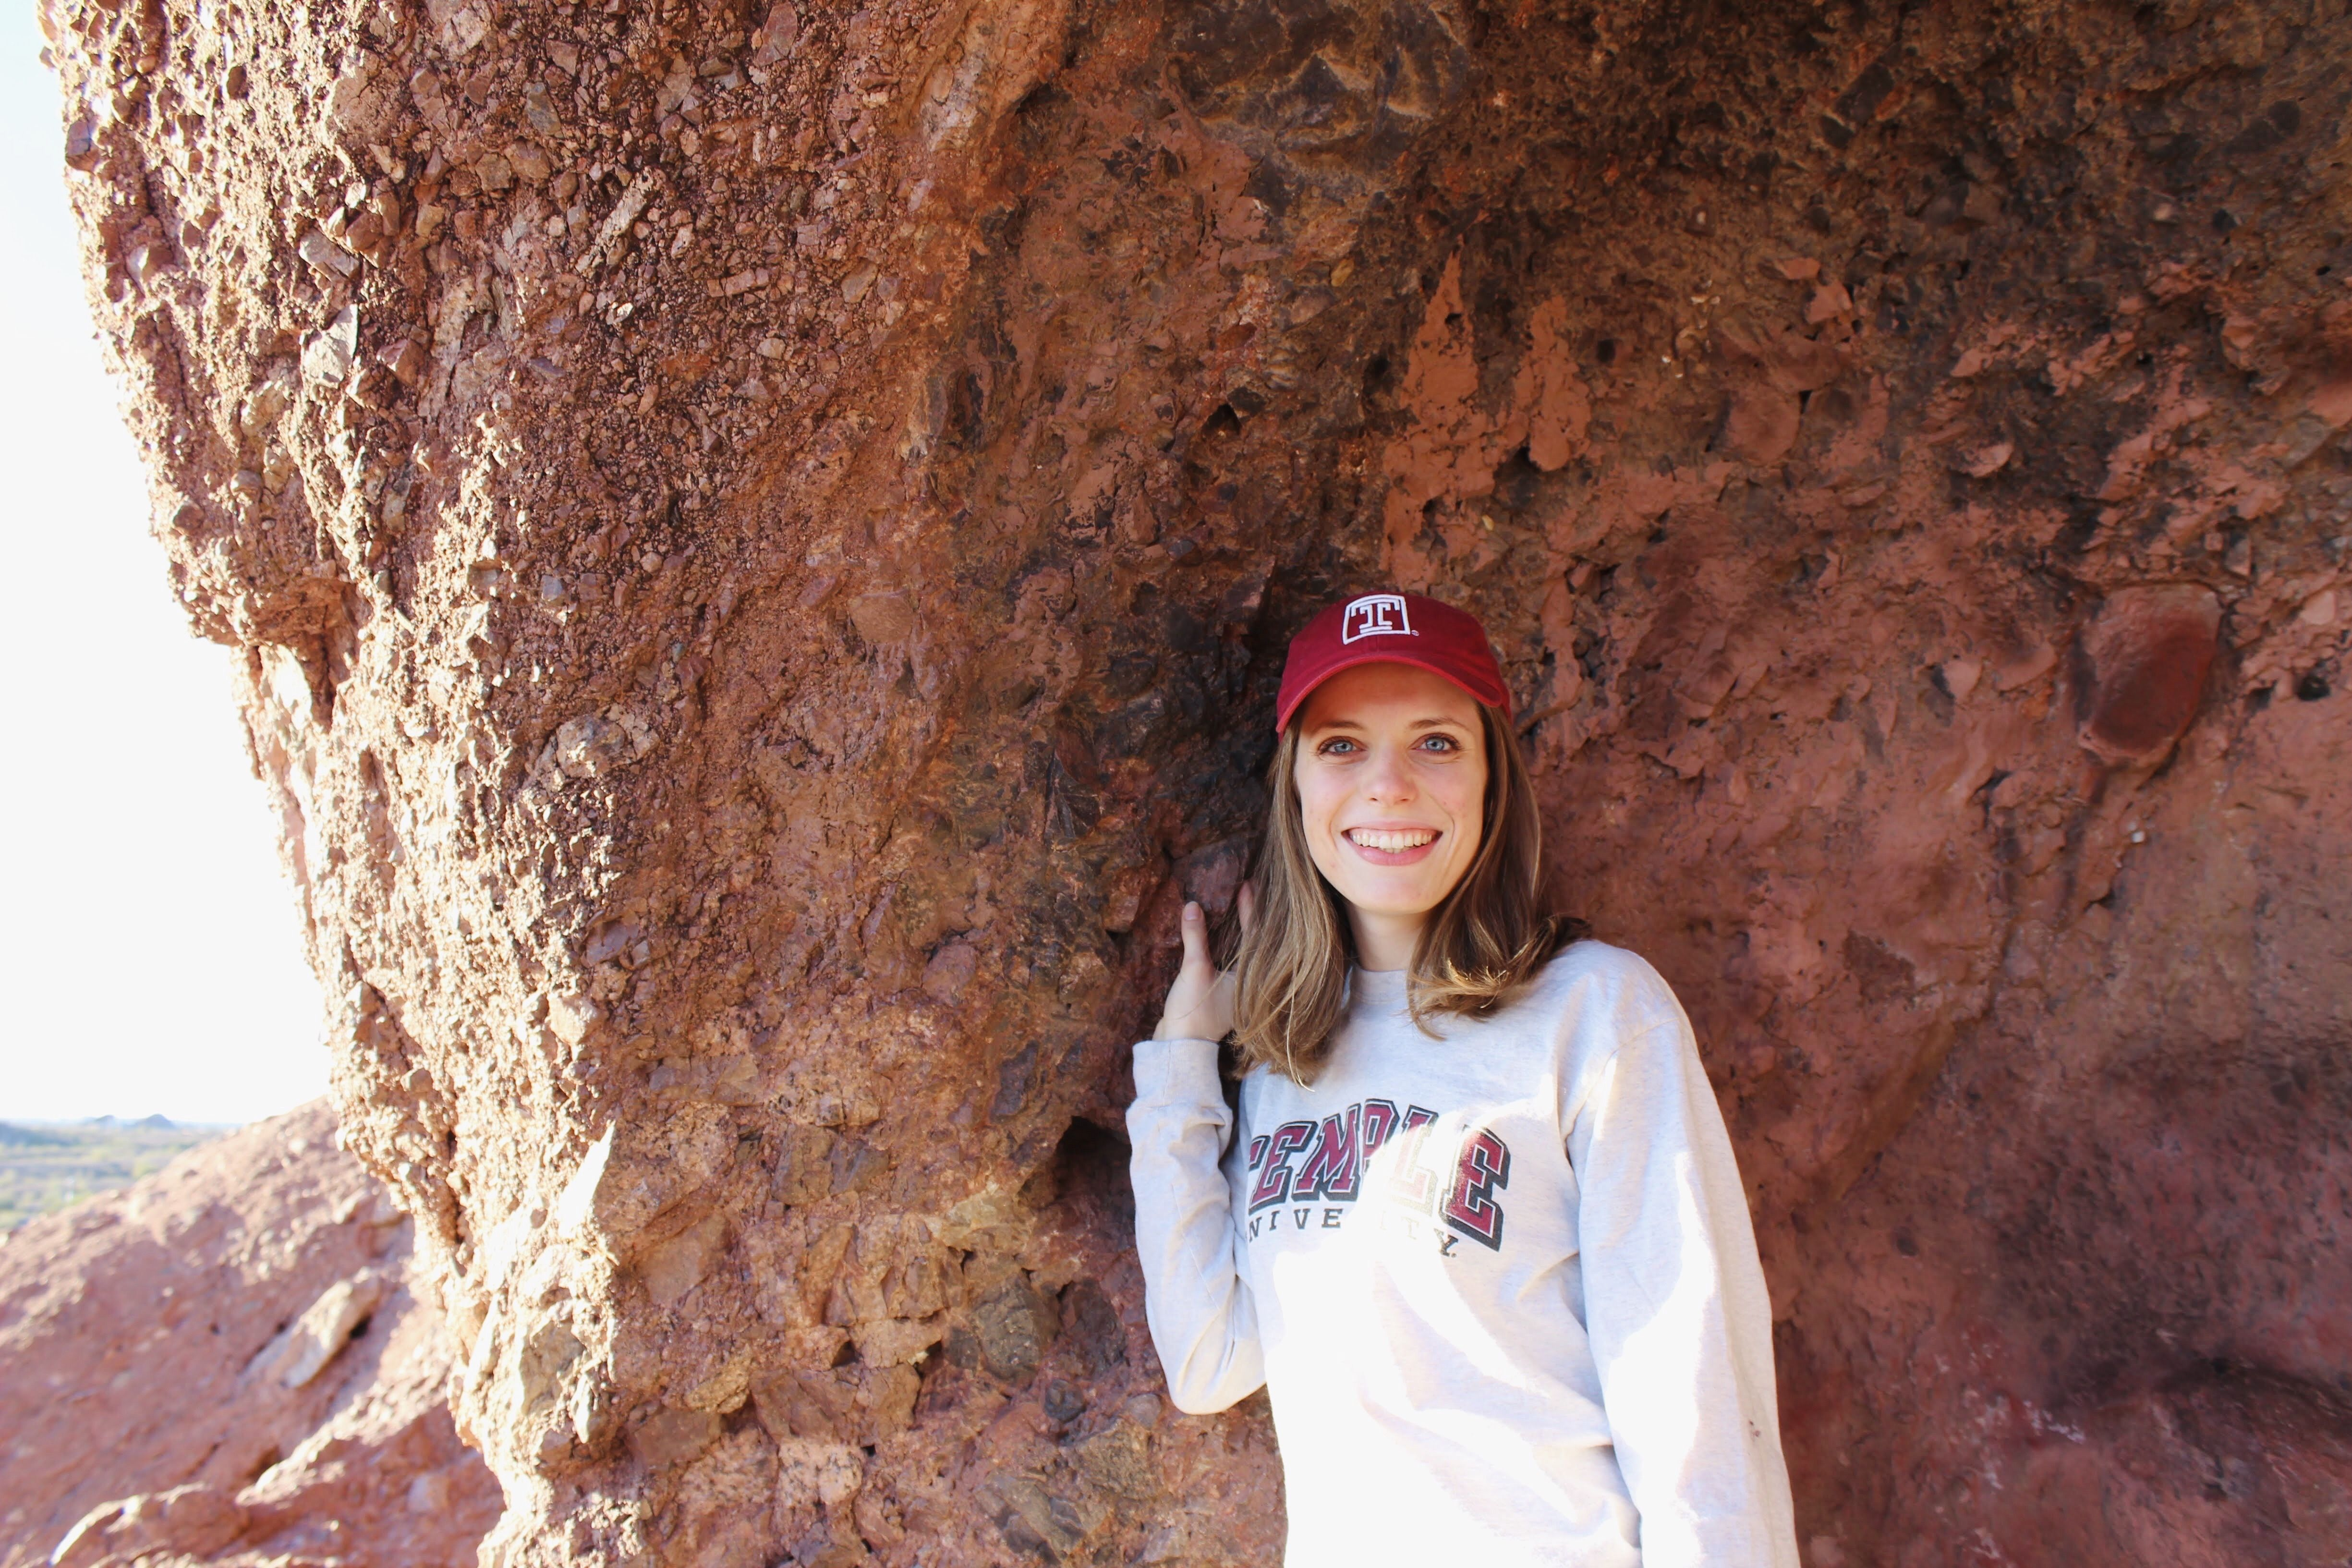 A College of Science and Technology student poses in front of a big rock.